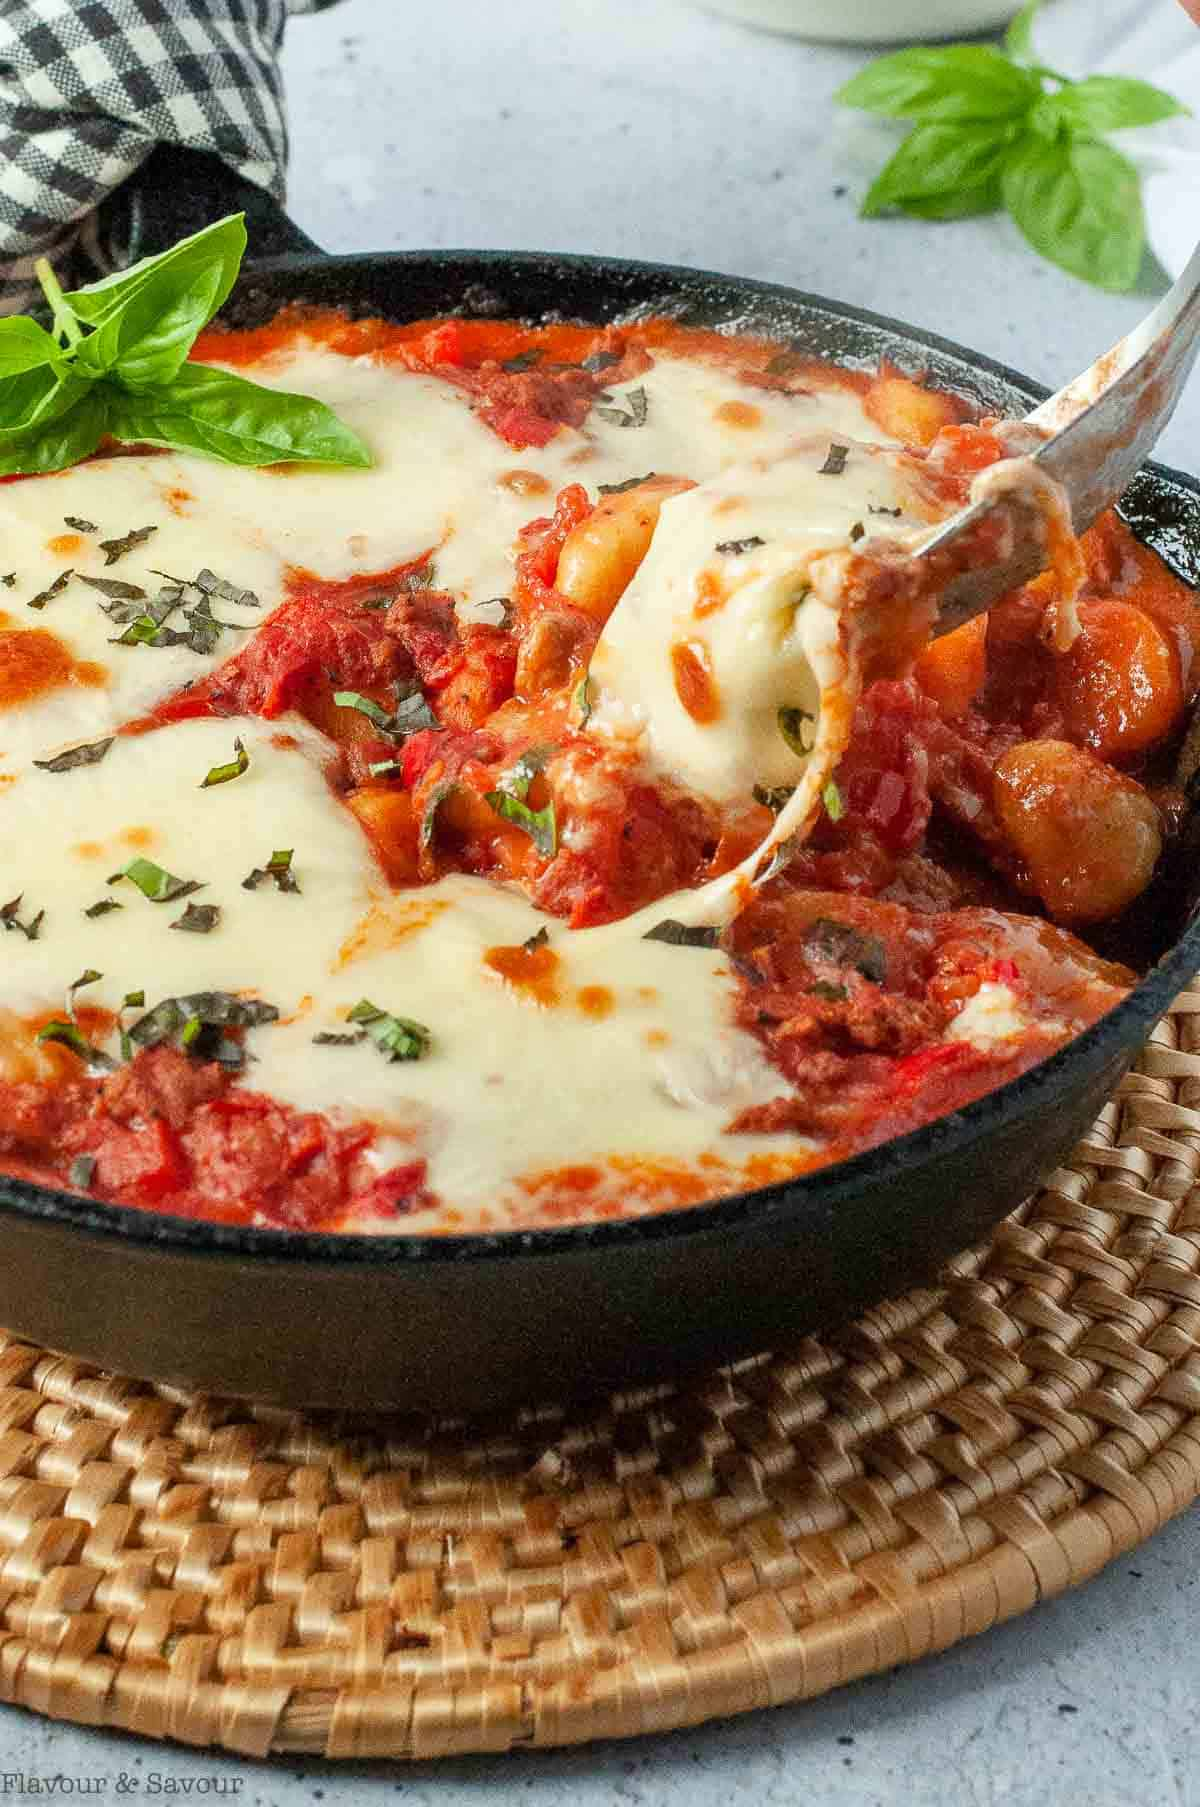 A serving spoonful of creamy tomato gnocchi bake with plant-based meat